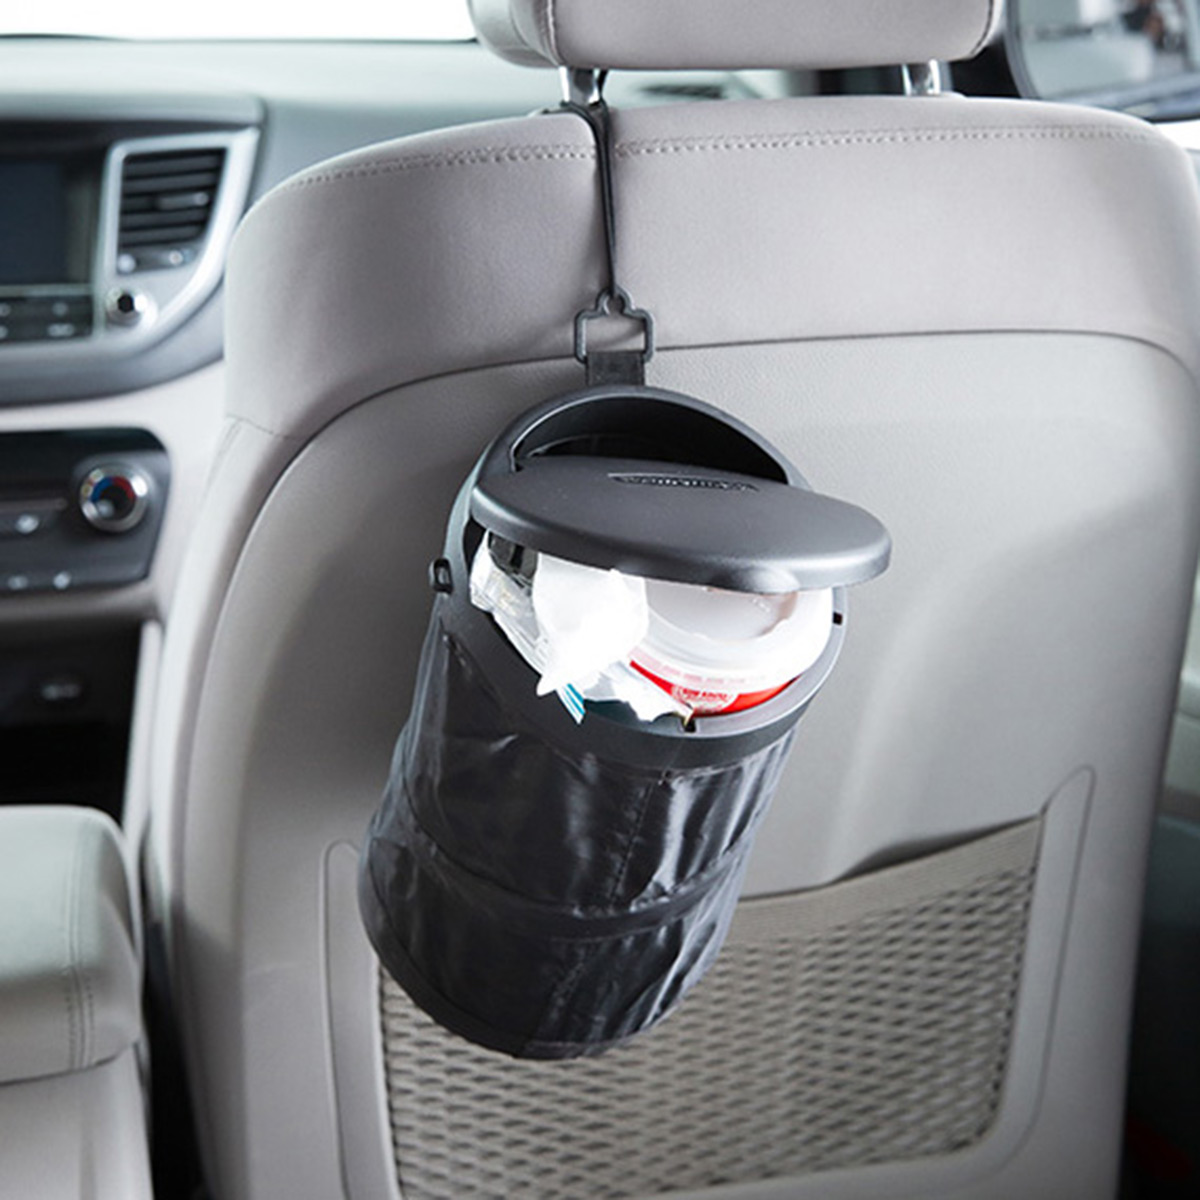 Rubbermaid Pop-Up Trash Can